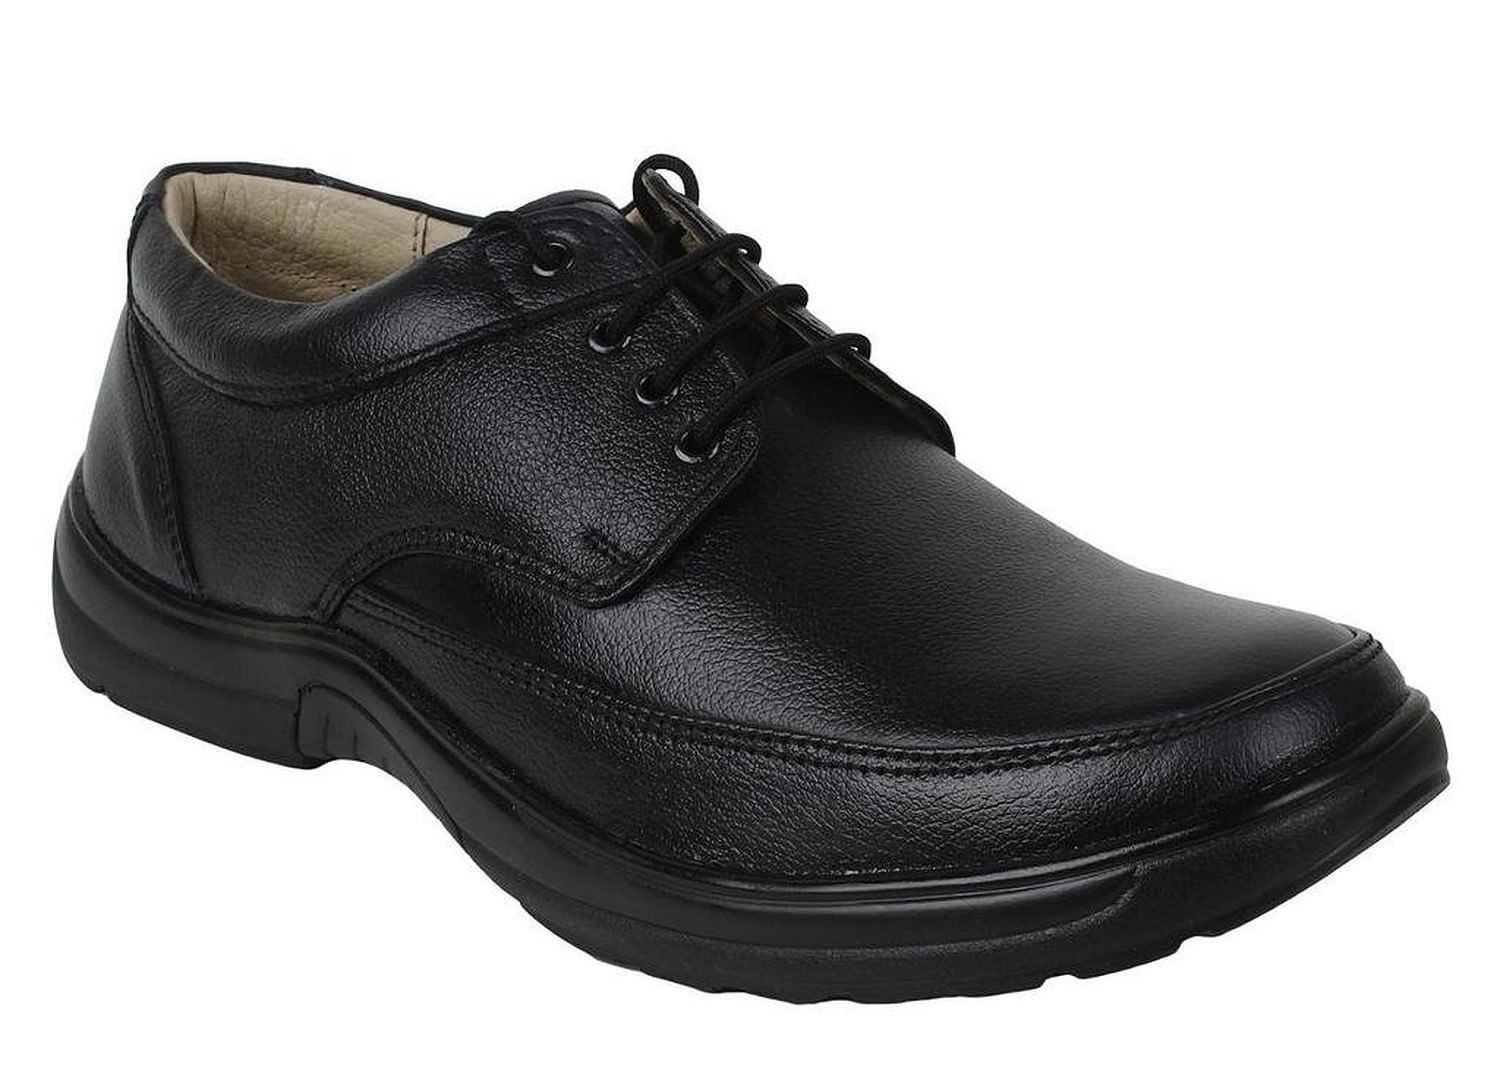 SeeandWear Genuine Leather Formal Shoe